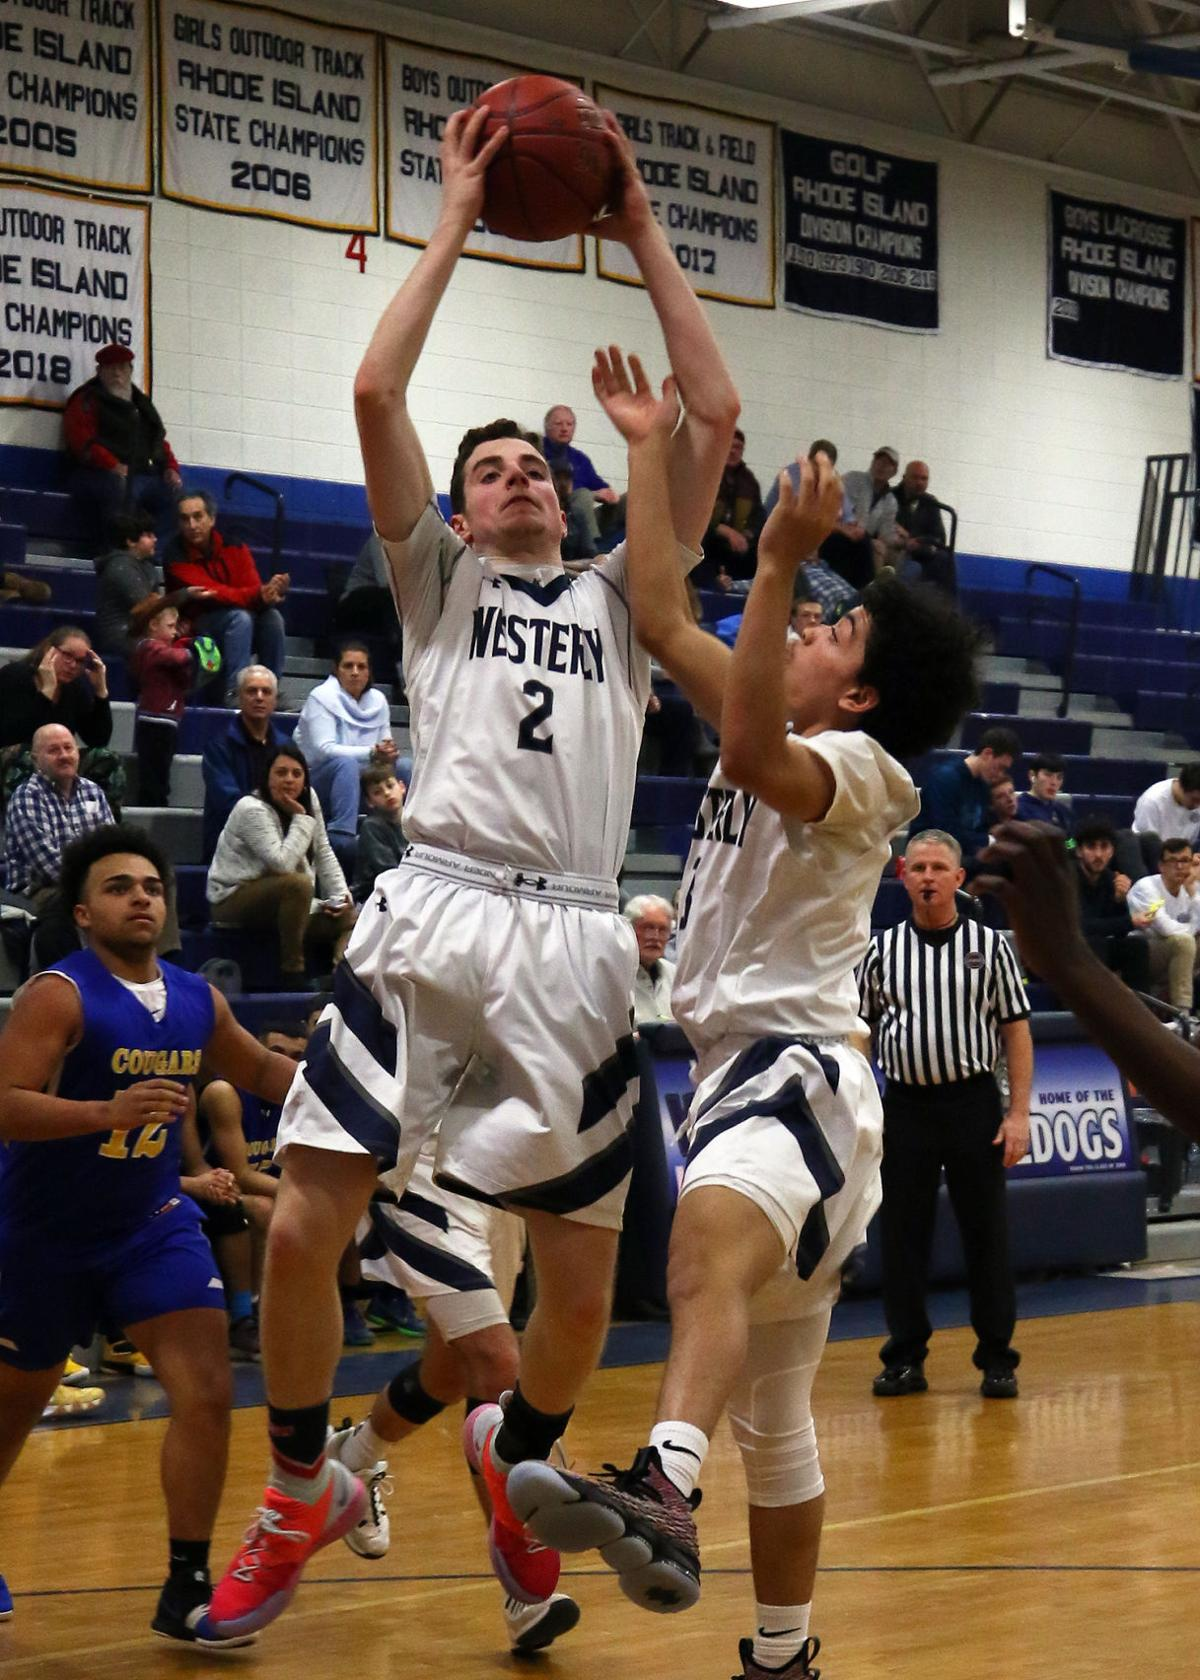 Westerly's Connor Warner (2) grabs a rebound with teammate Byron Dunn (3) while Noah Warren (12) looks on for North Providence. The Westerly Bulldogs boys varsity basketball team hosted the North Providence Cougars on Tuesday evening, February 19th, 2019 at Westerly High School's Federico Gymnasium. | Jackie L. Turner, Special to The Sun.